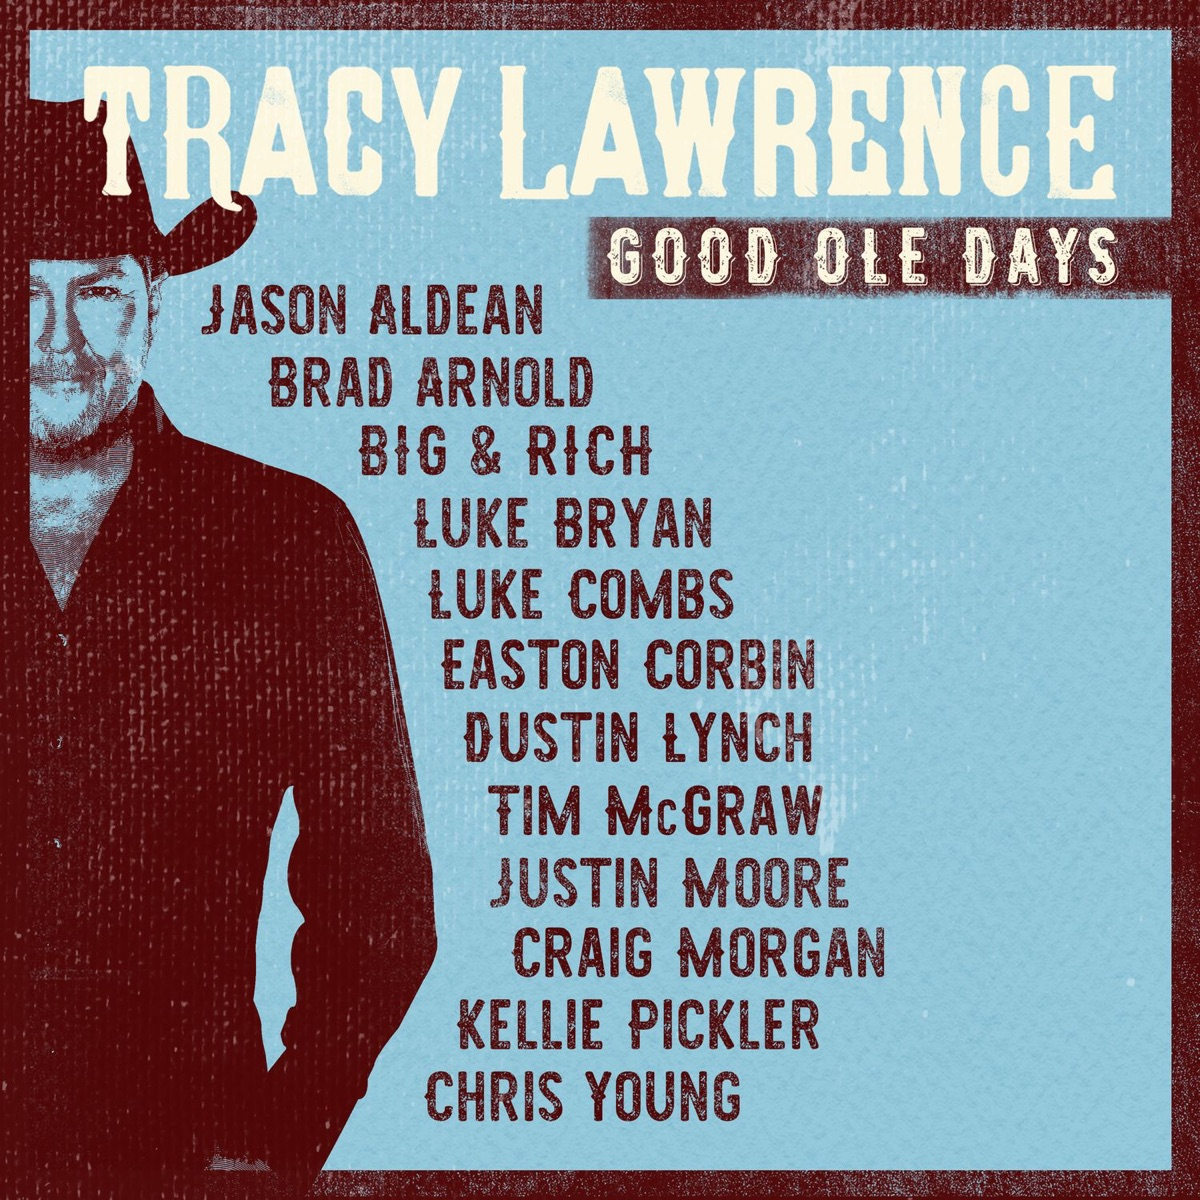 Good Ole Days Tracy Lawrence CD cover